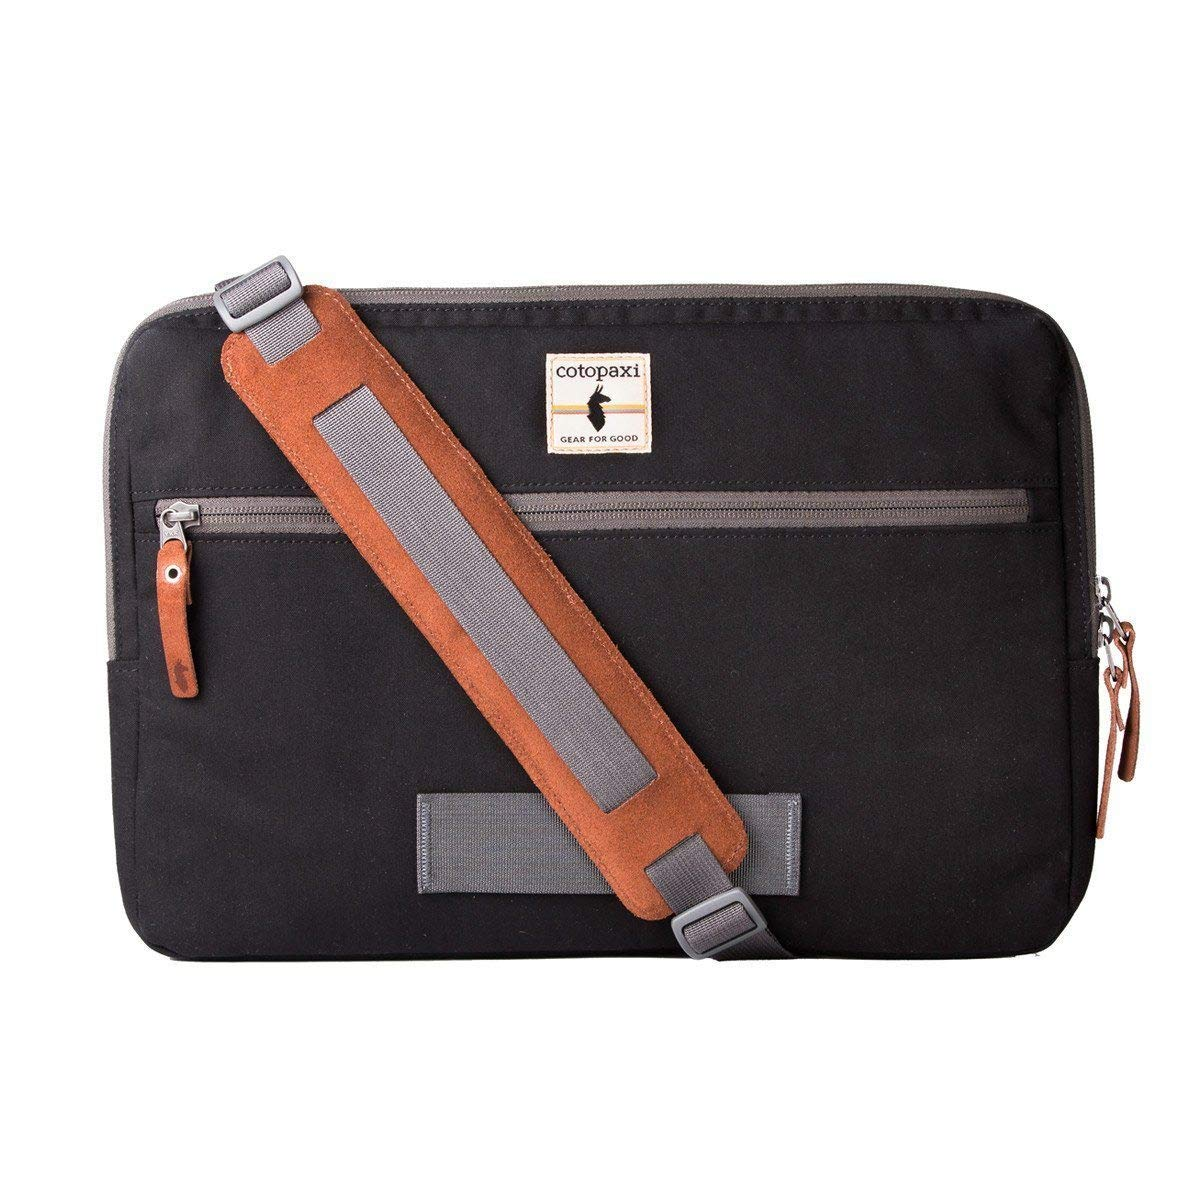 9ad9bf47f2 Amazon.com  Cotopaxi Boin Laptop Sleeve - Black  Computers   Accessories